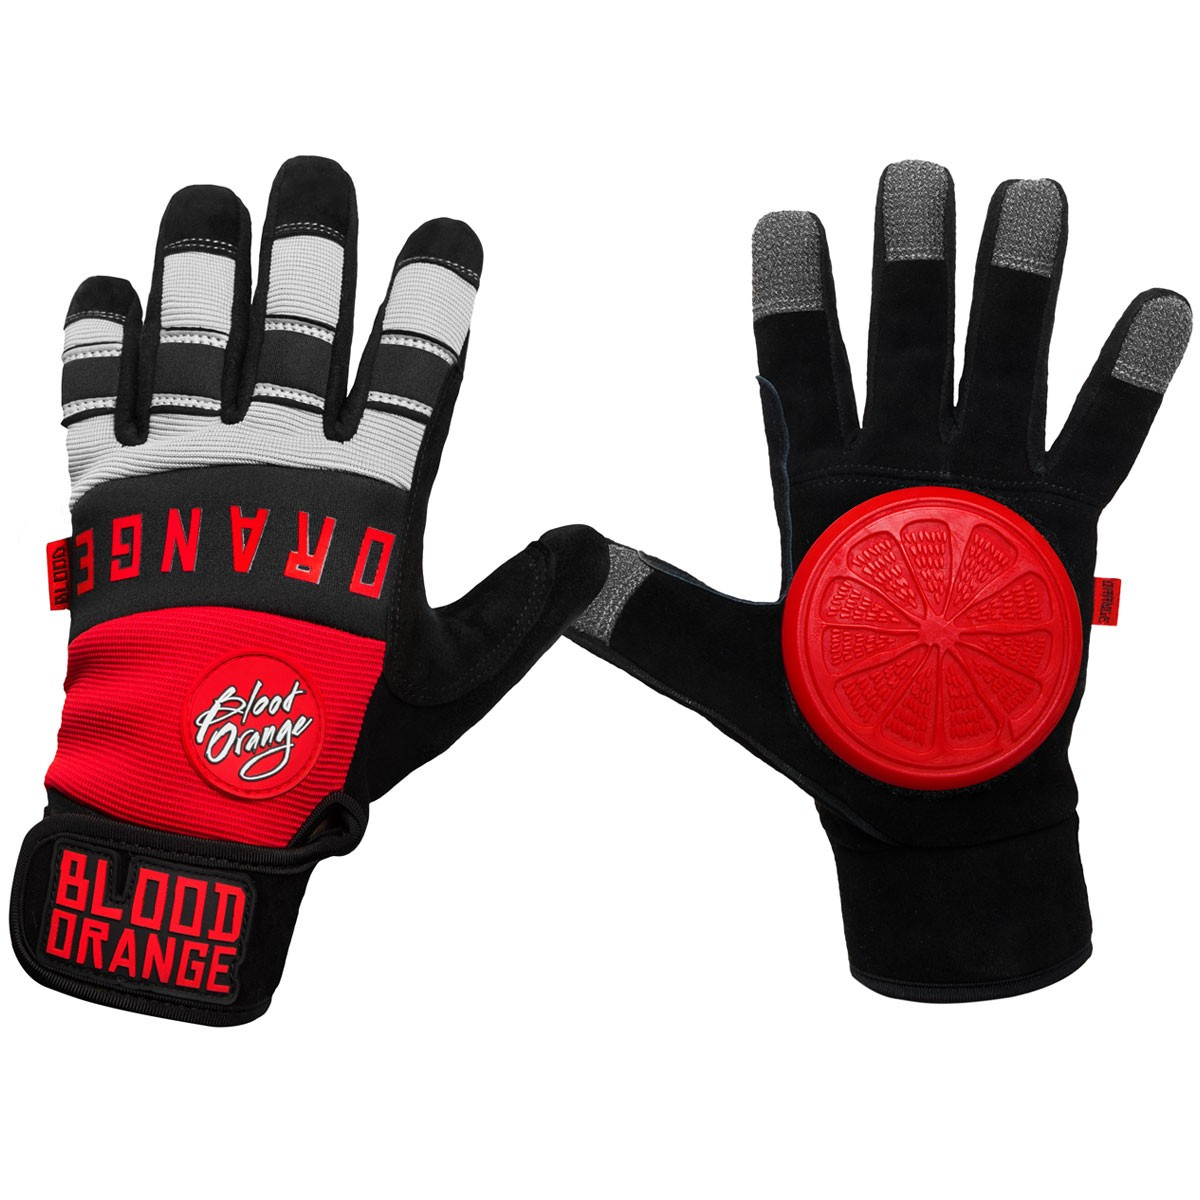 Blood Orange Knuckles Slide Gloves - Red / Grey